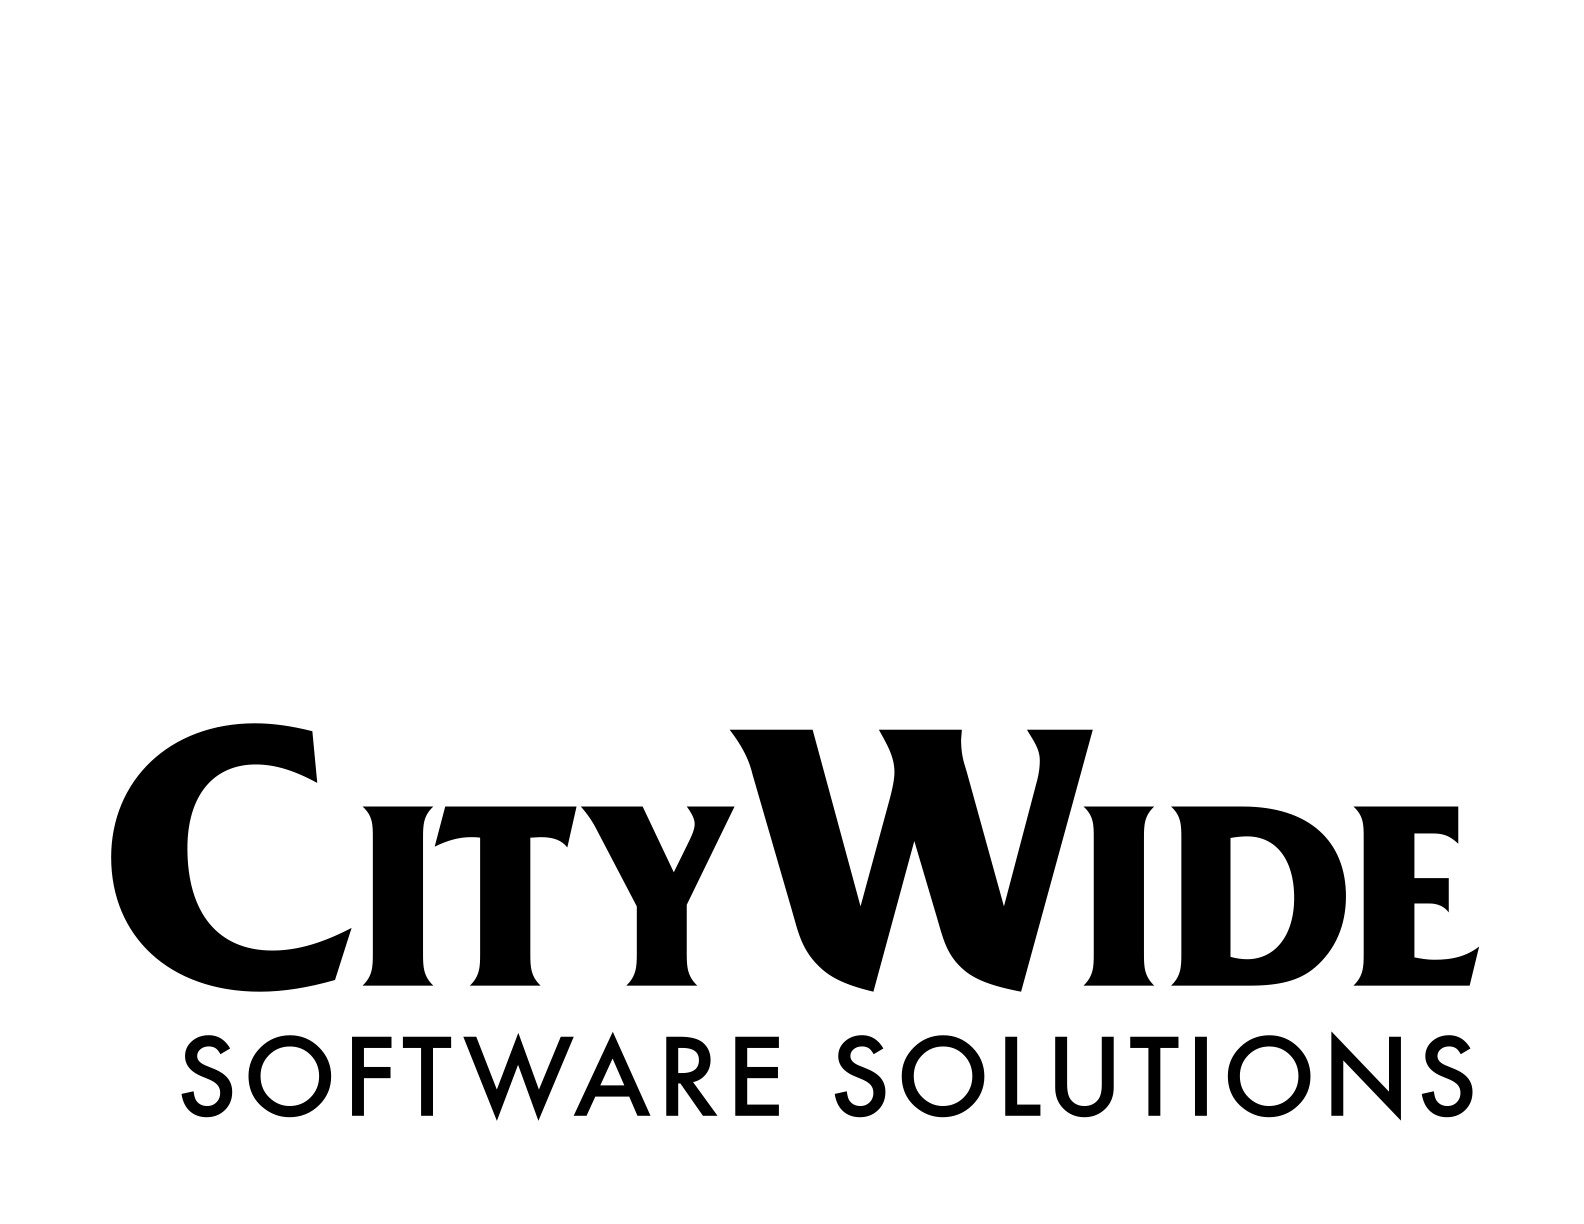 Citywide_software_solutions